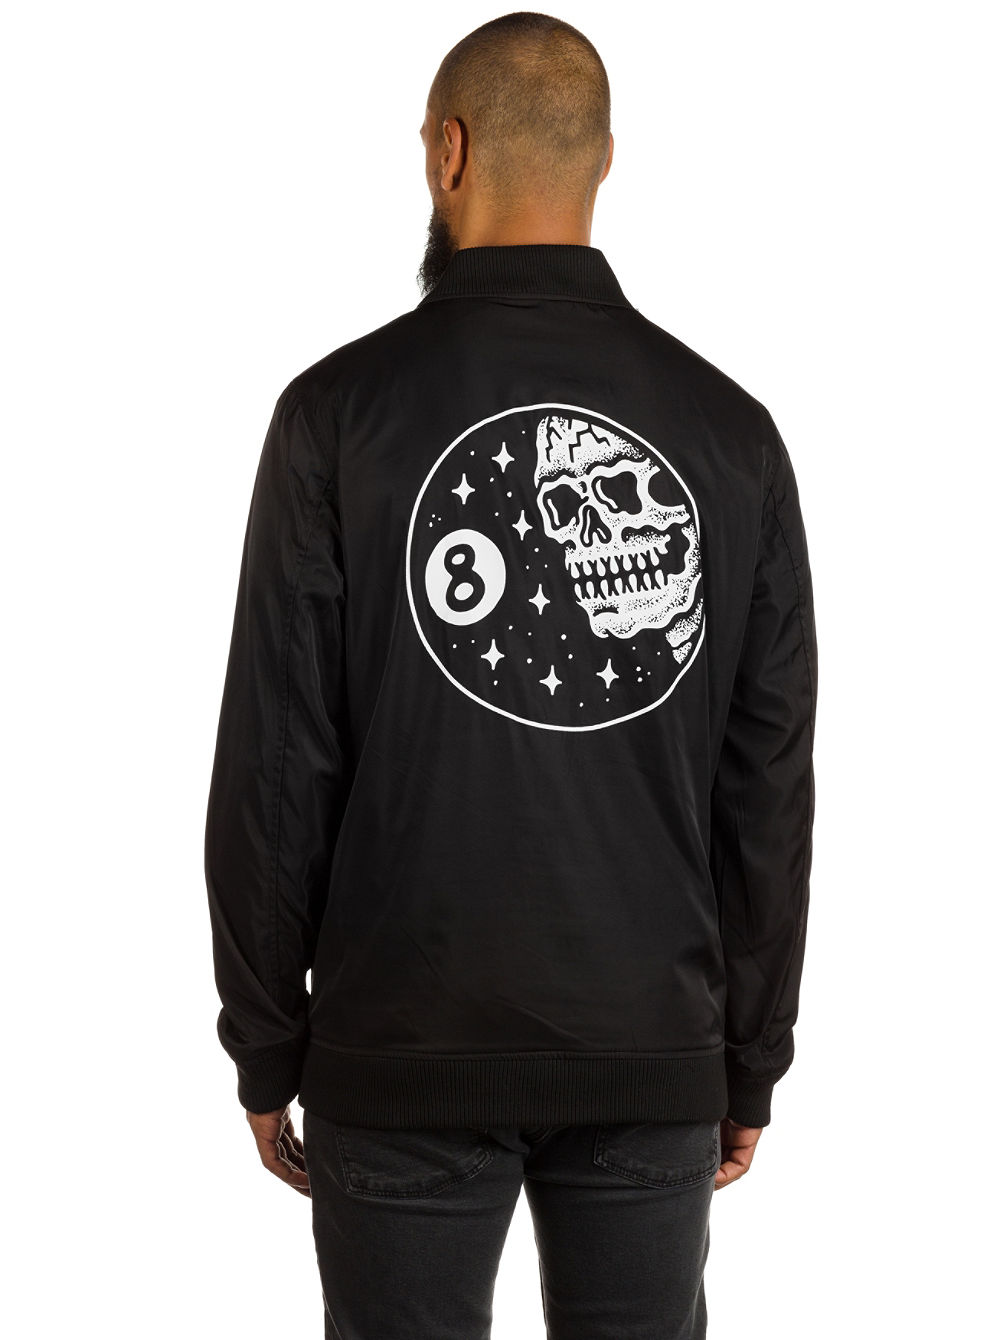 Buy Sketchy Tank Bomb Out Jacket Online At Blue Tomato Com